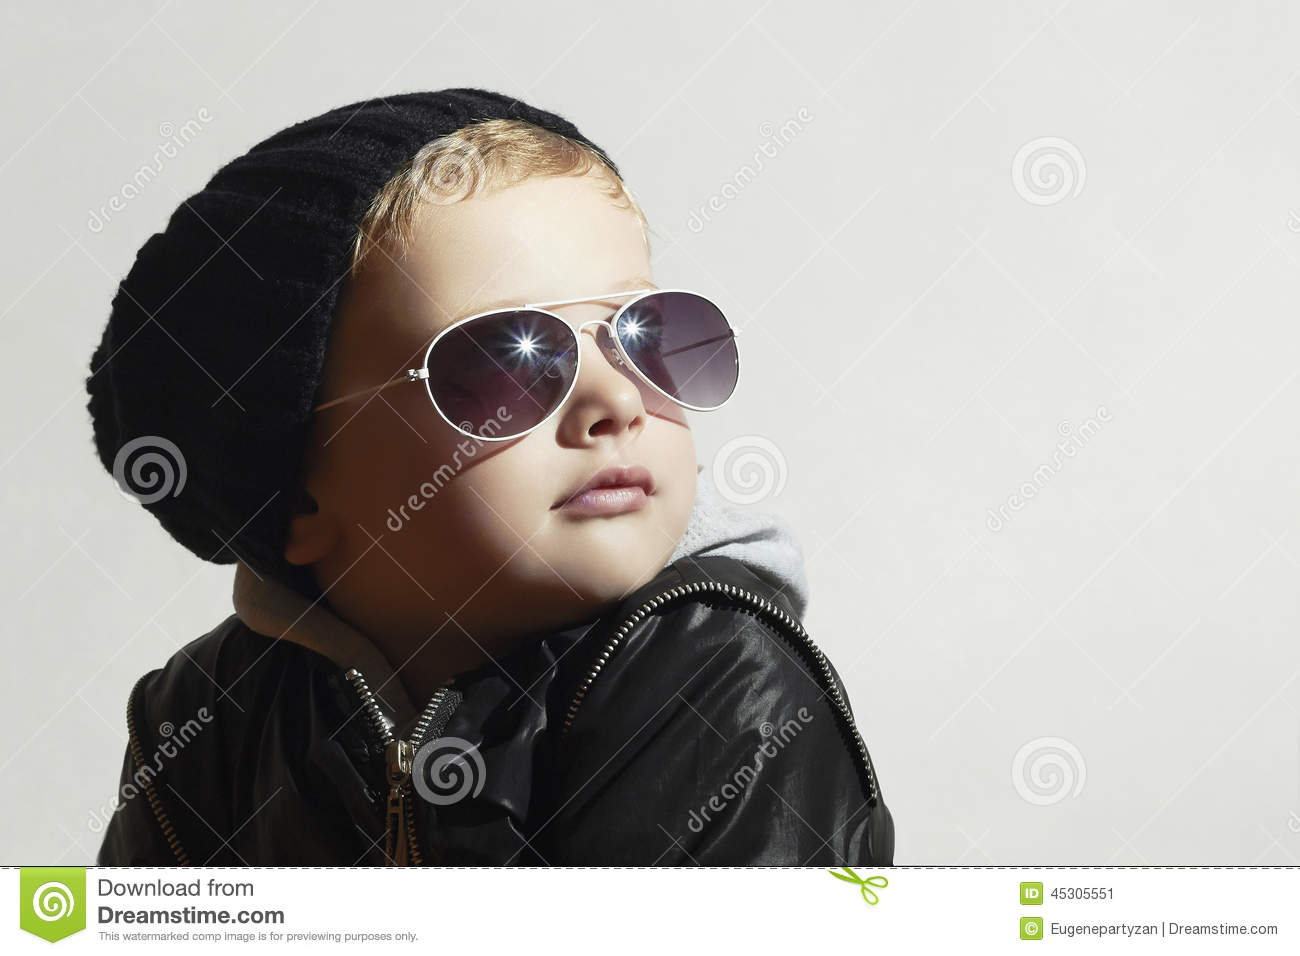 ... boy in sunglasses.Child.Winter style.Kids fashion.Little model in